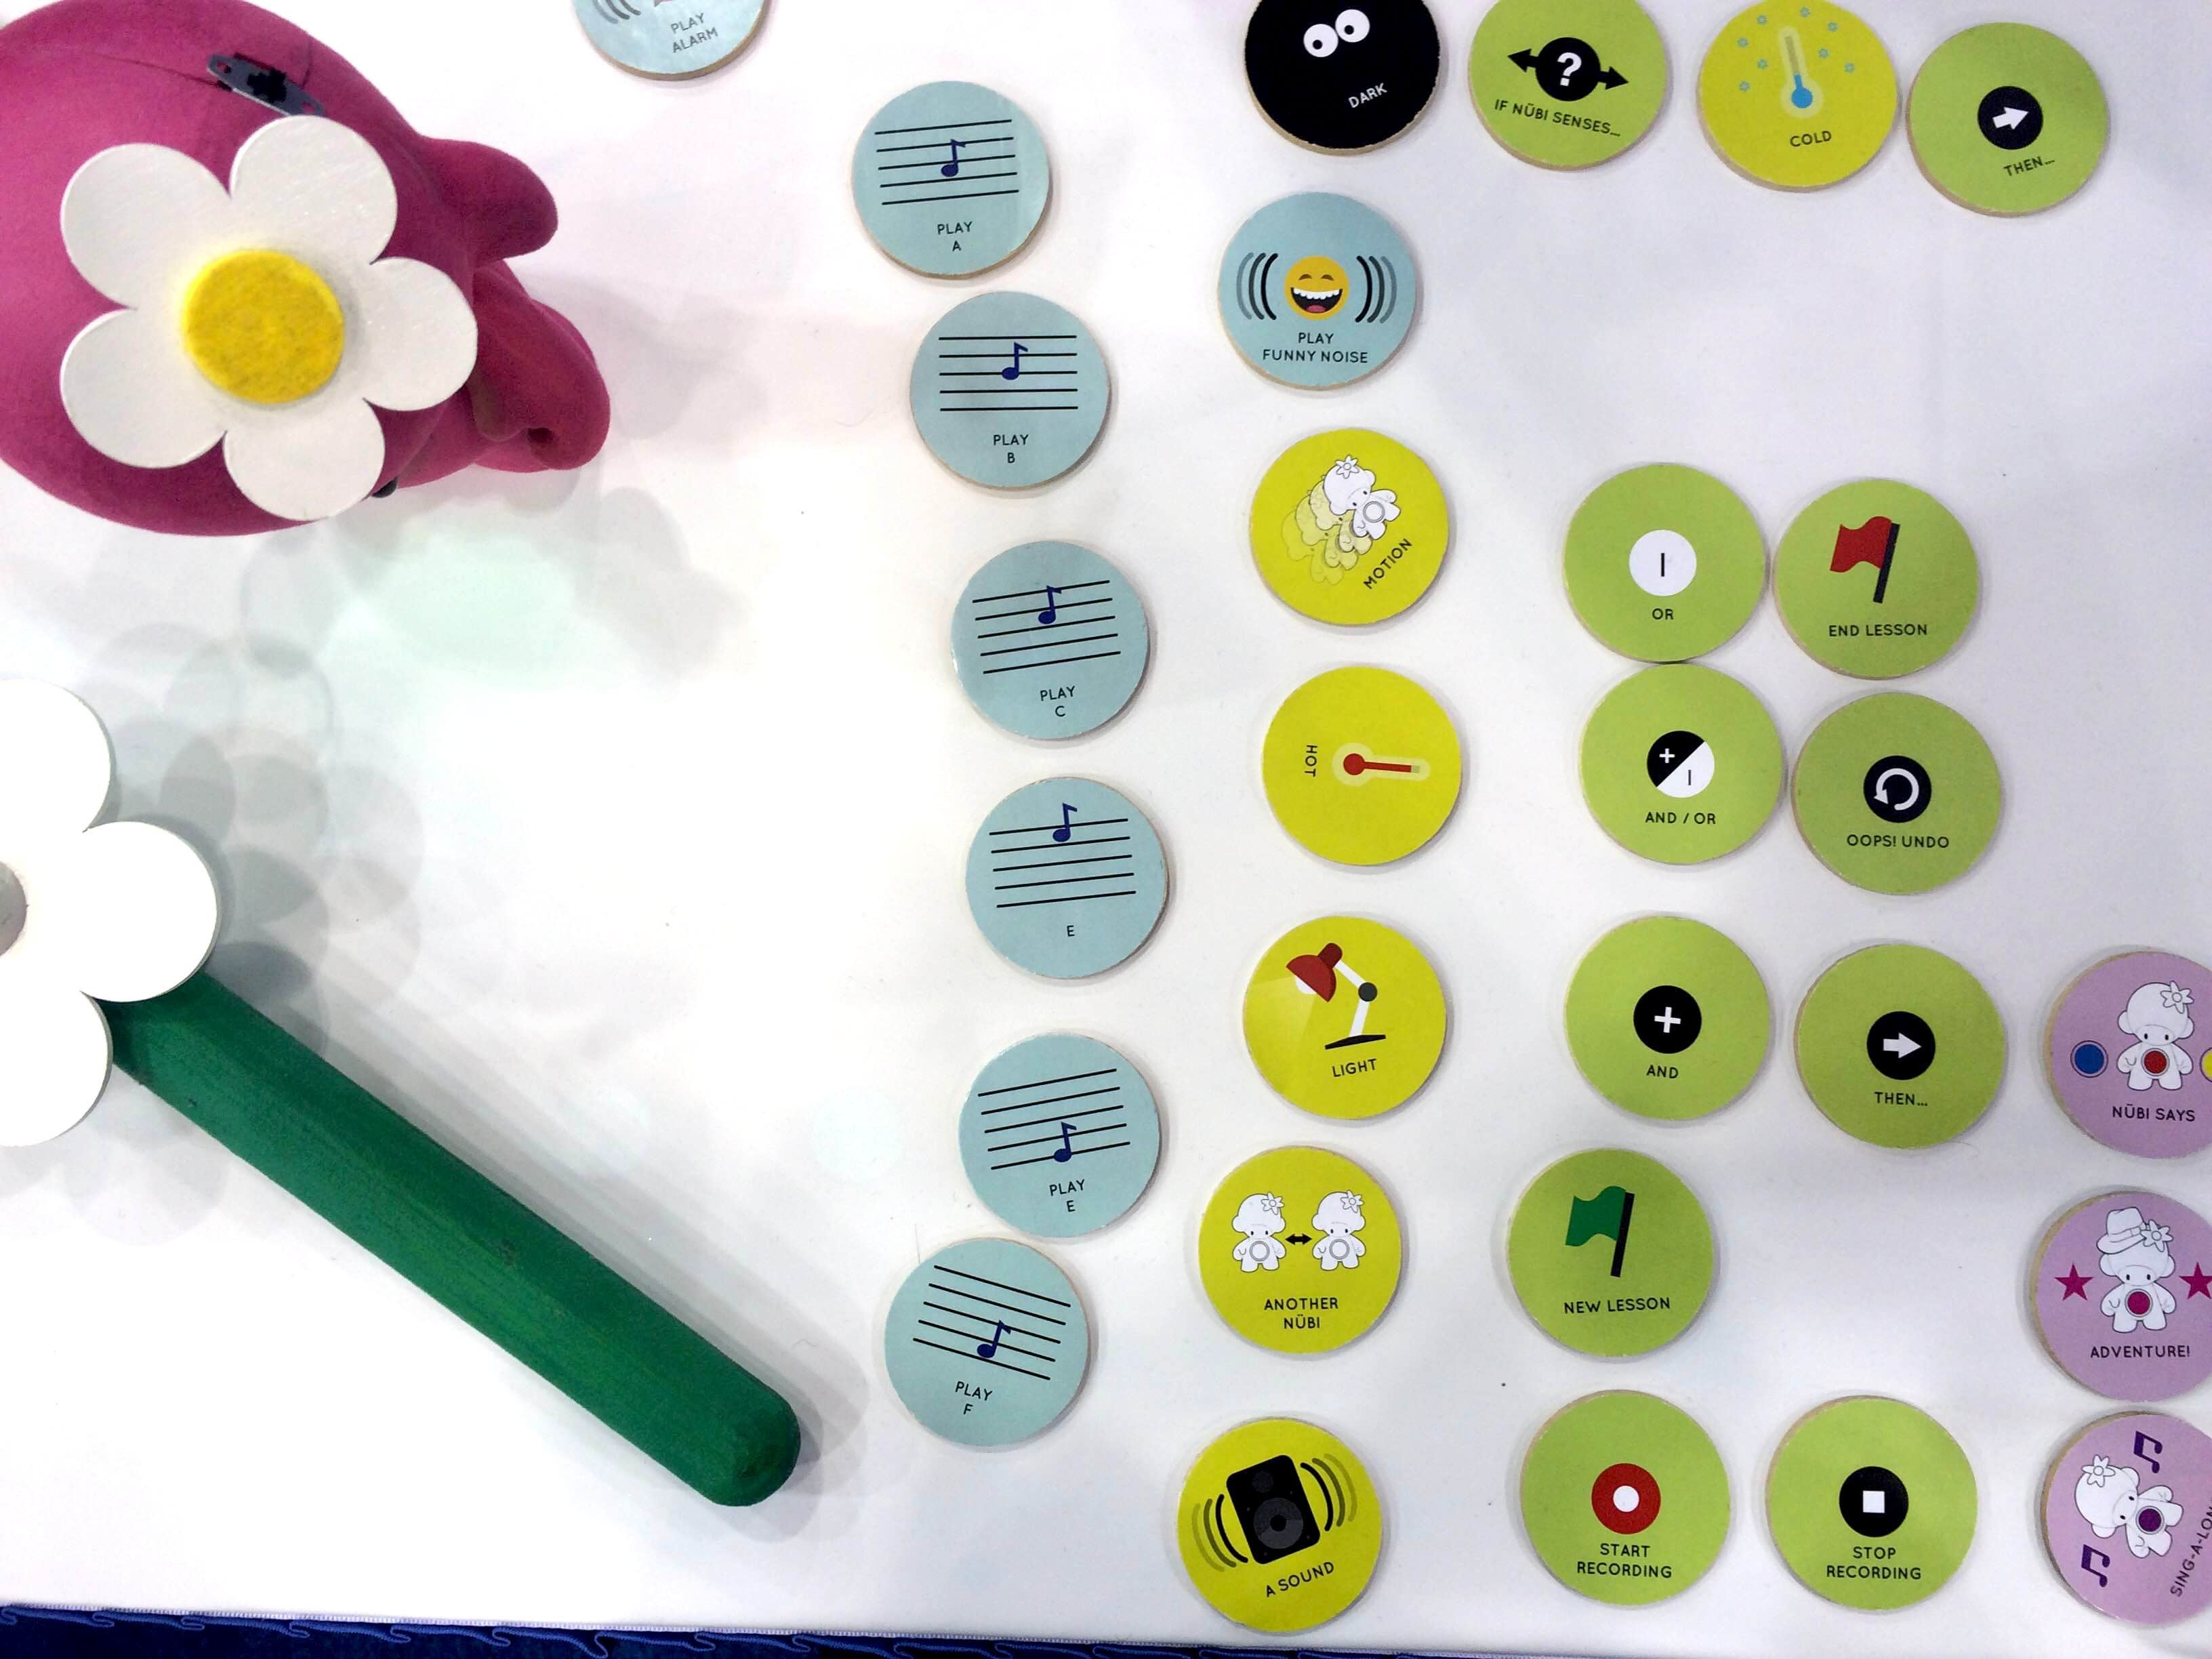 This Sweet Connected Toy Is Designed To Teach Kids How to Program